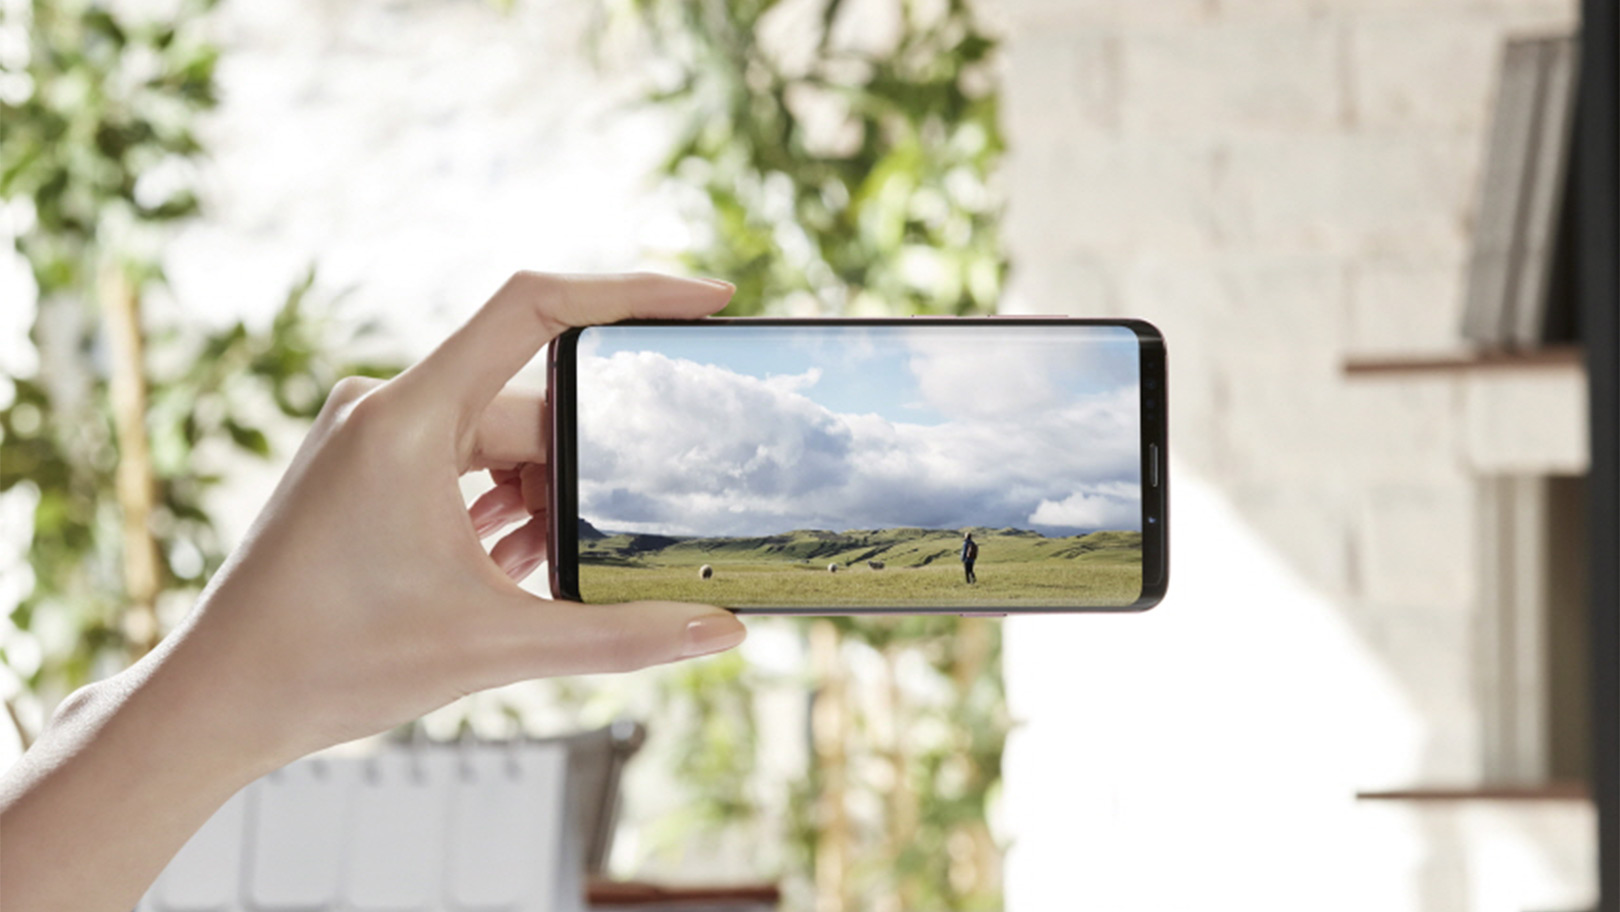 Samsung Galaxy S9: Tips and tricks to get the most out of